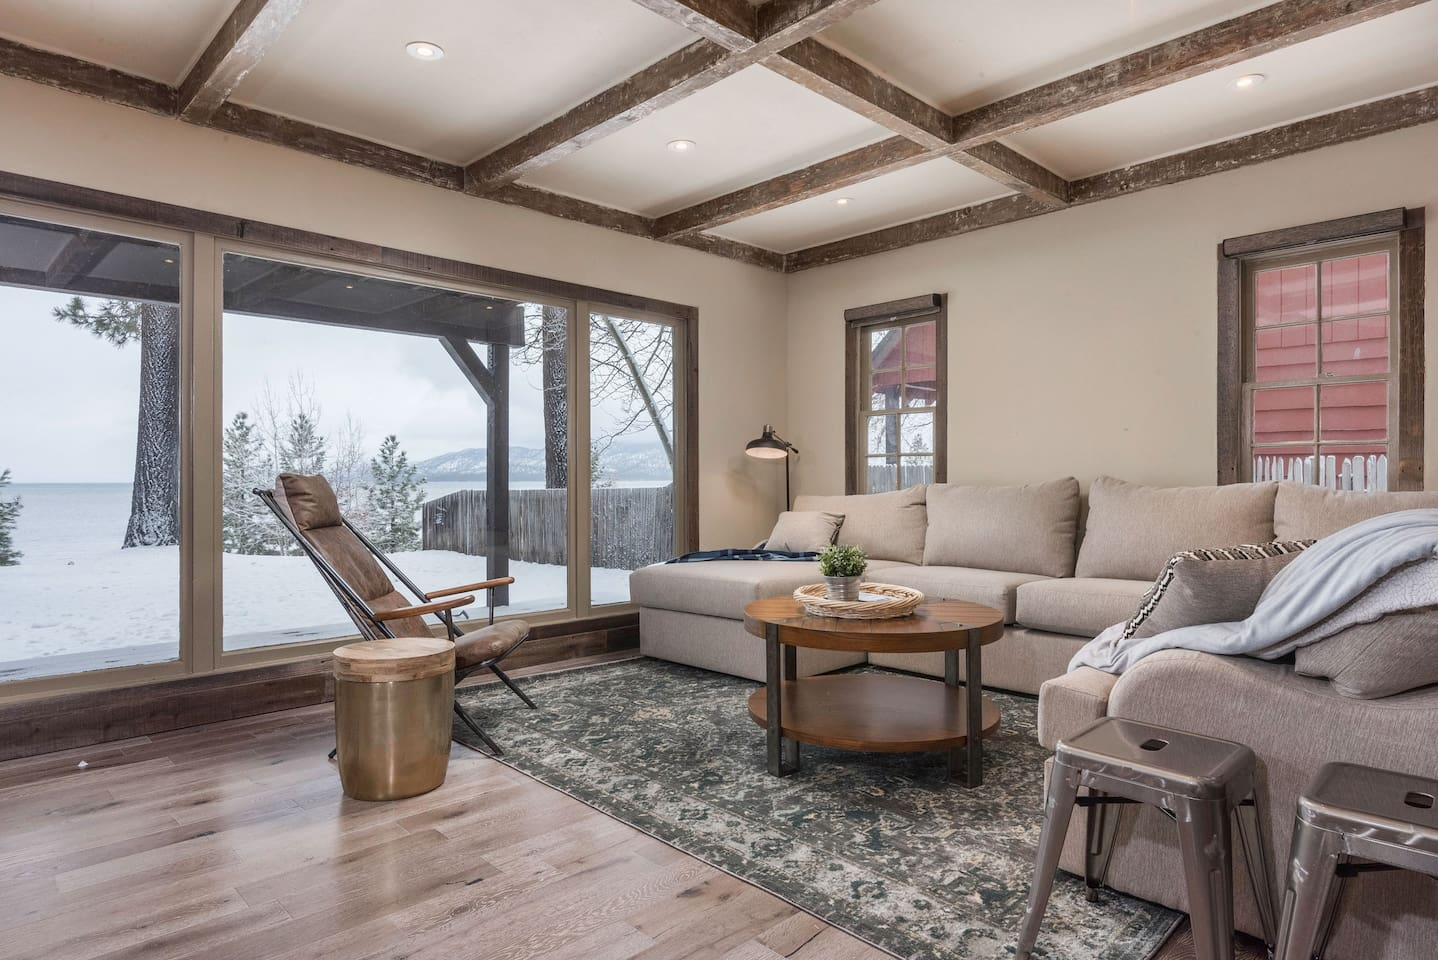 Welcome to South Lake Tahoe! This home is professionally managed by TurnKey Vacation Rentals.